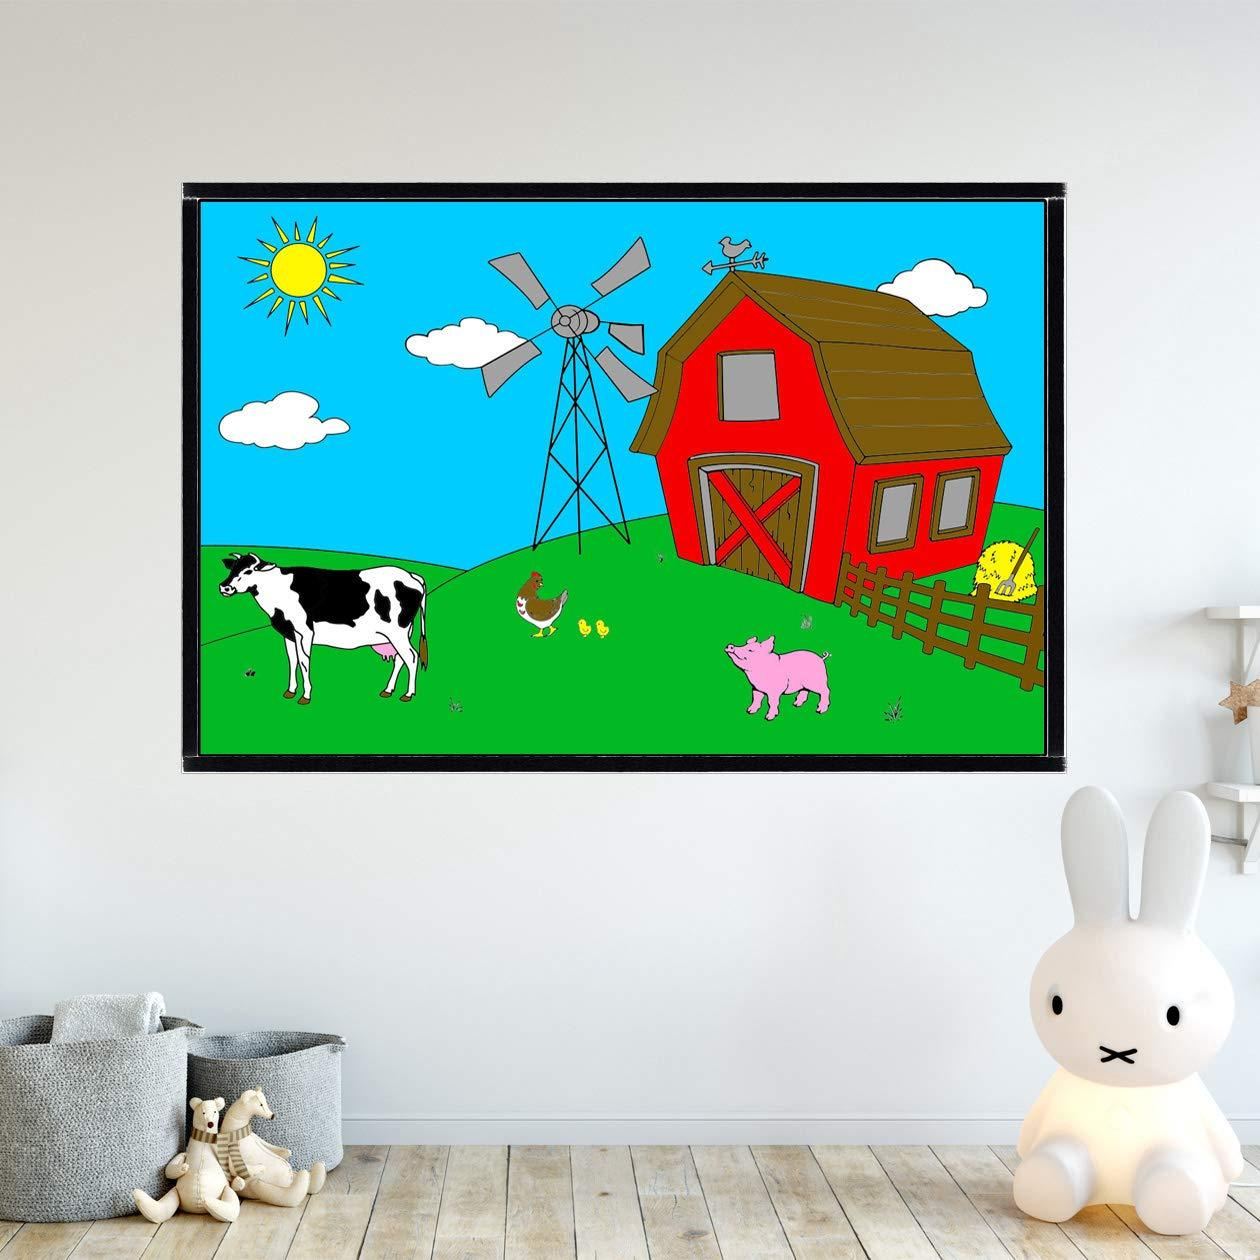 VWAQ Coloring Wall Prints - Farm Animals Dry Erase Whiteboard Wall Decal - DRV4 - VWAQ Vinyl Wall Art Quotes and Prints